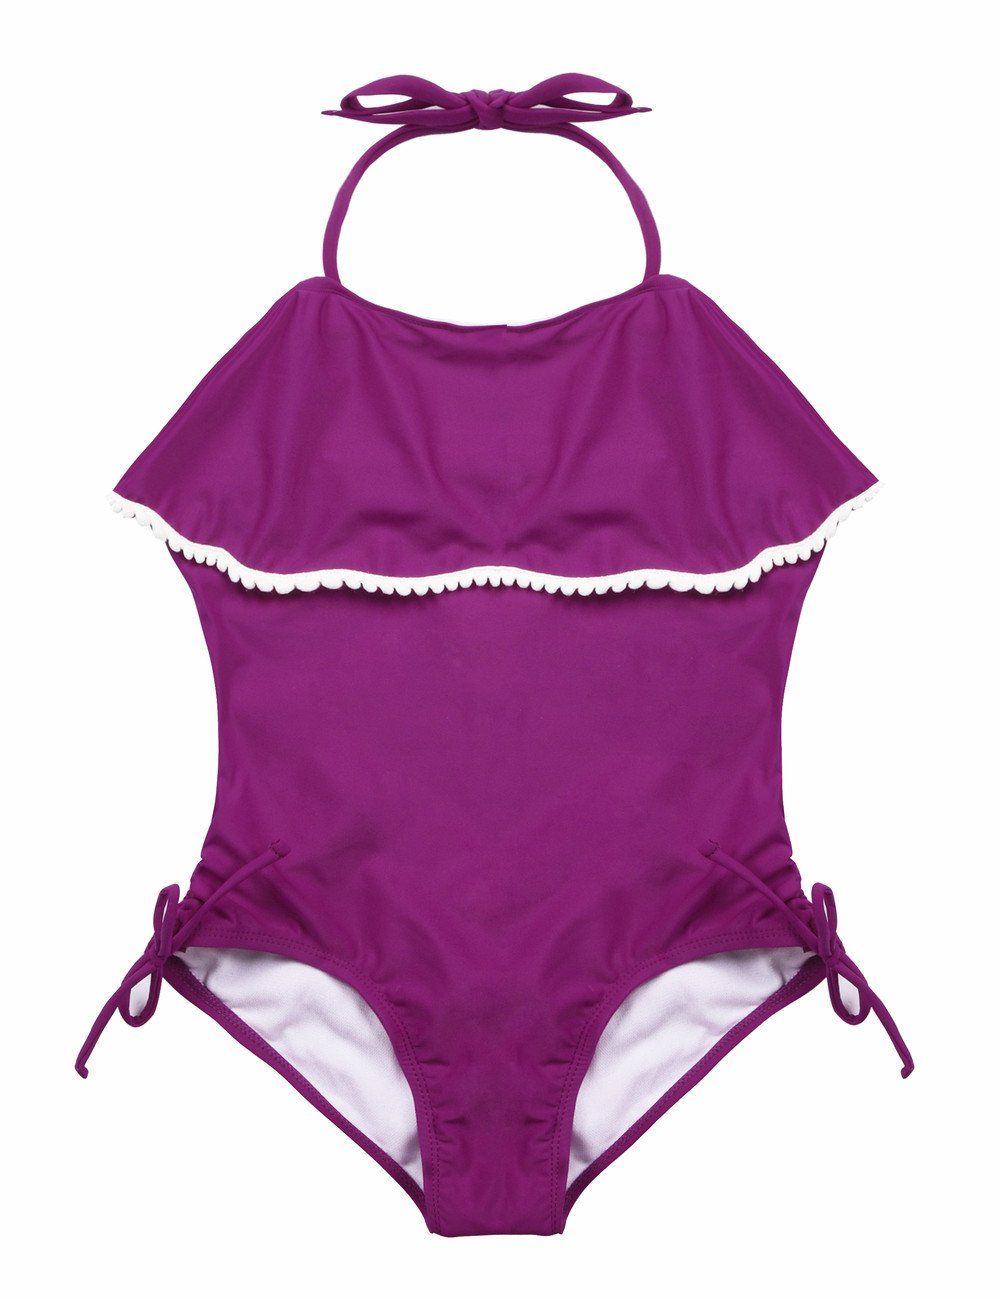 Firpearl Girls One Piece Swimsuit Falbaba Flounce Drawstring Halter Bathing Suit M